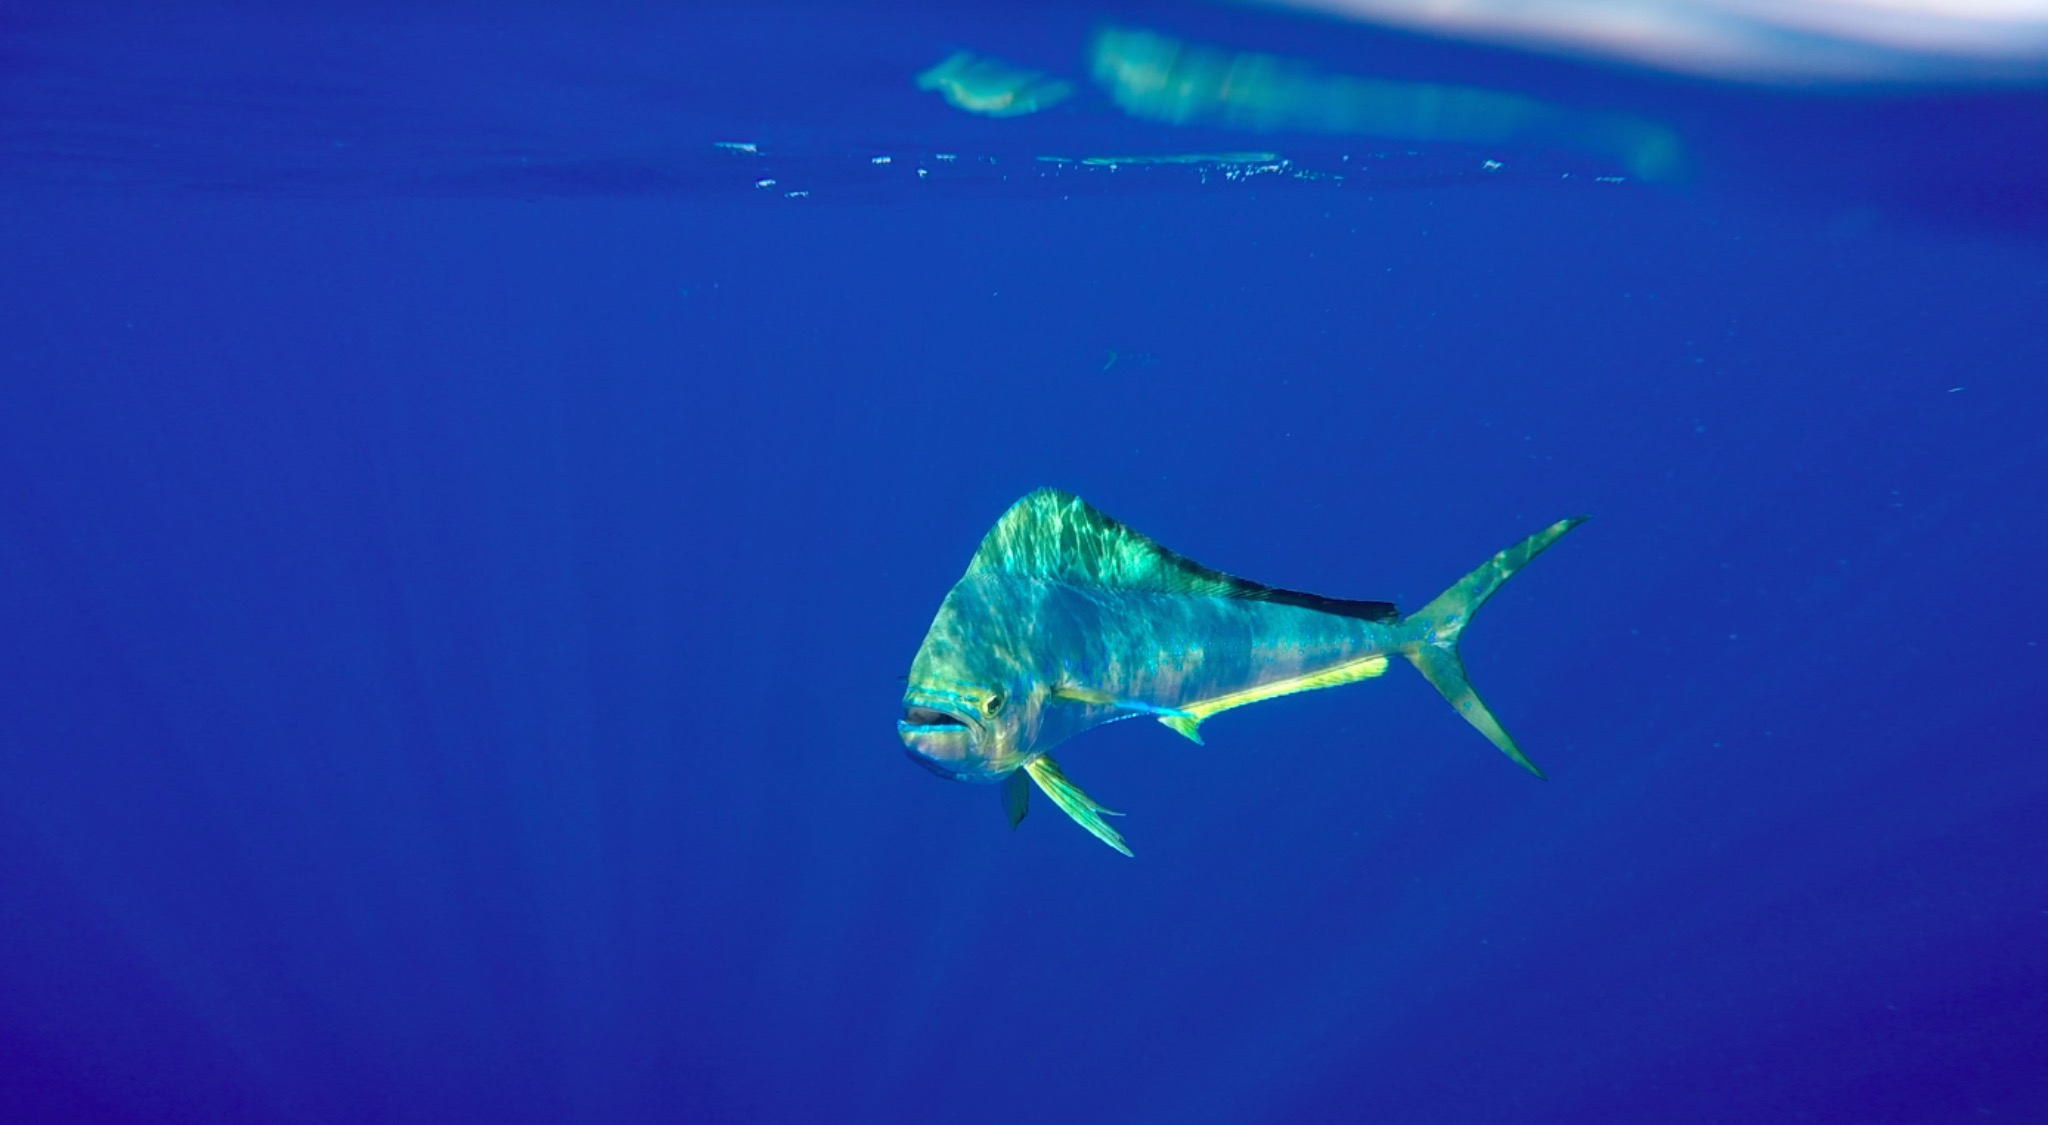 Mahi Mahi (dolphinfish) as captured by Hannah Van Alstine during Plastics Research